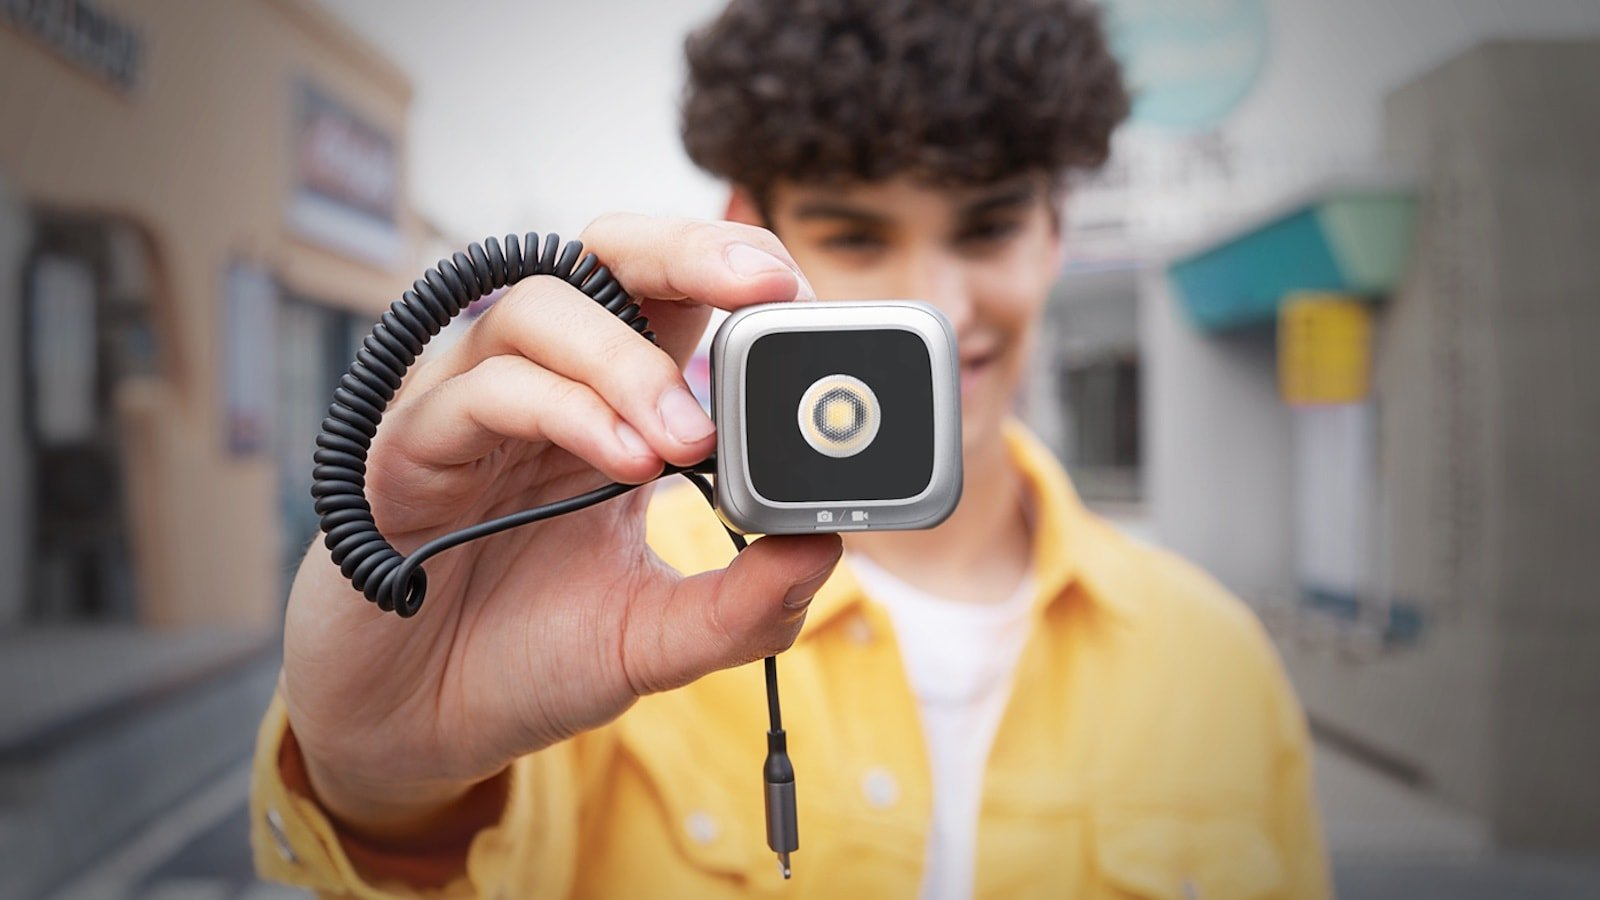 Anker iPhone LED Flash photography accessory has a super bright, long-range flash